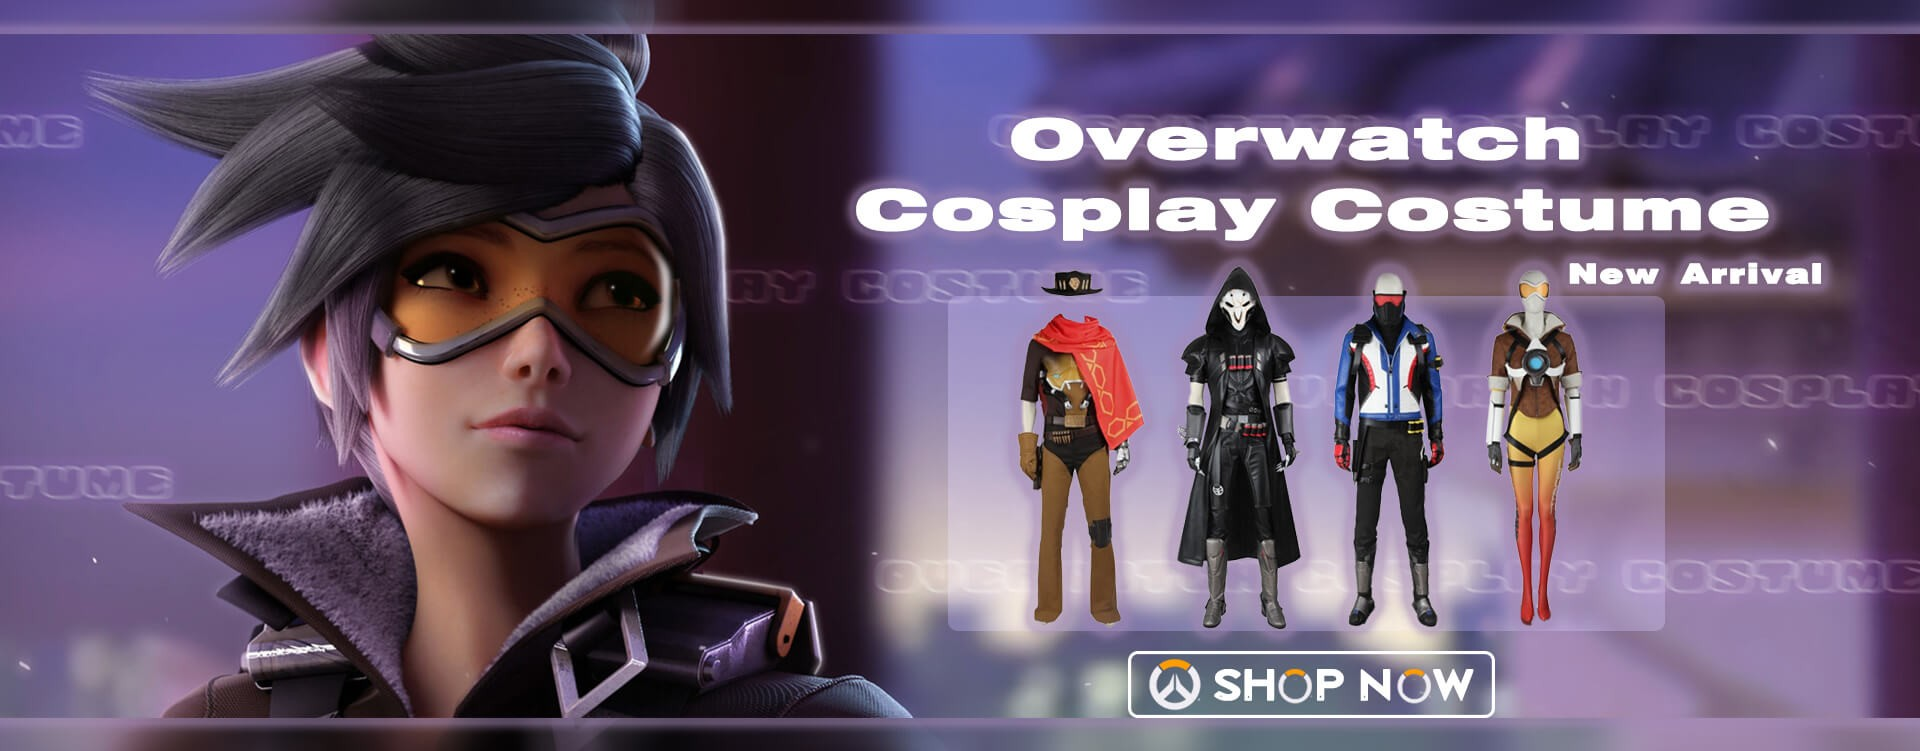 2019 New Arrivals: Overwatch Cosplay Costume